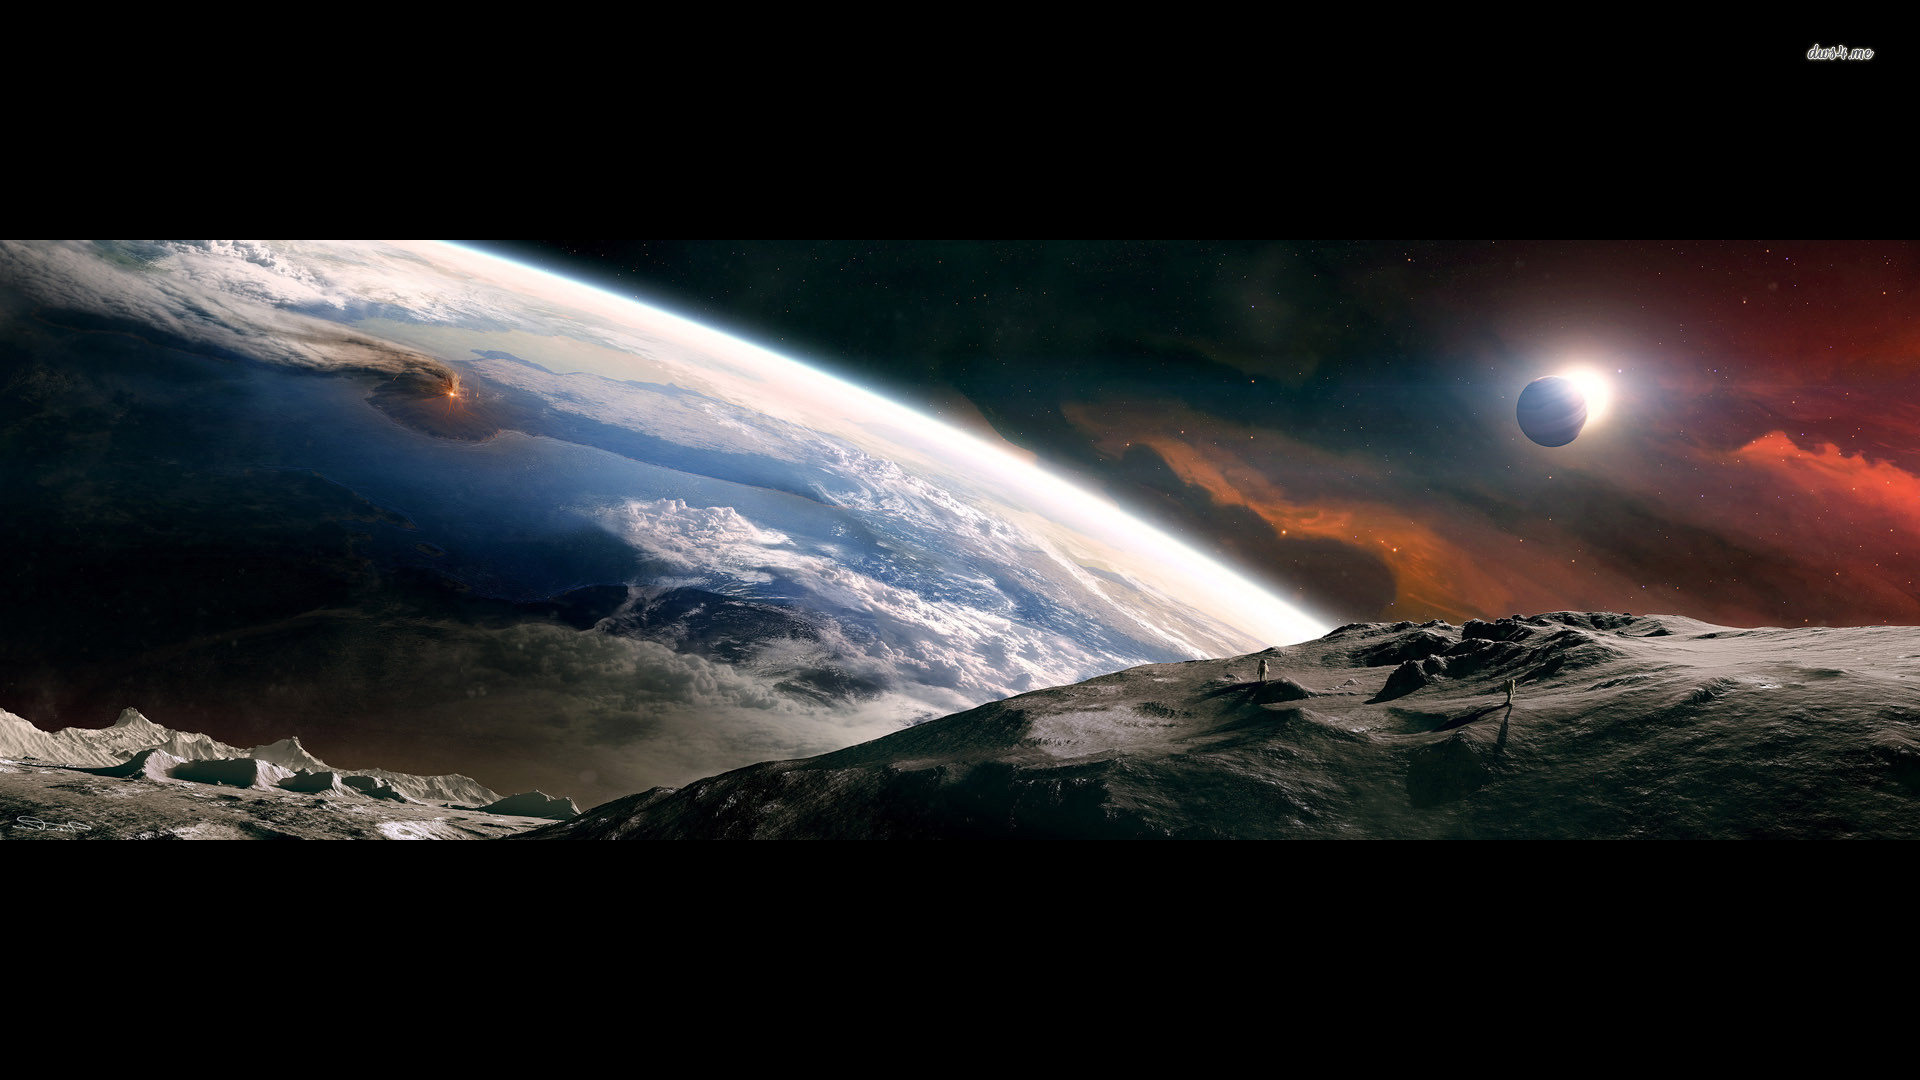 Earth From Space 27 Widescreen Wallpaper – Hivewallpaper.com